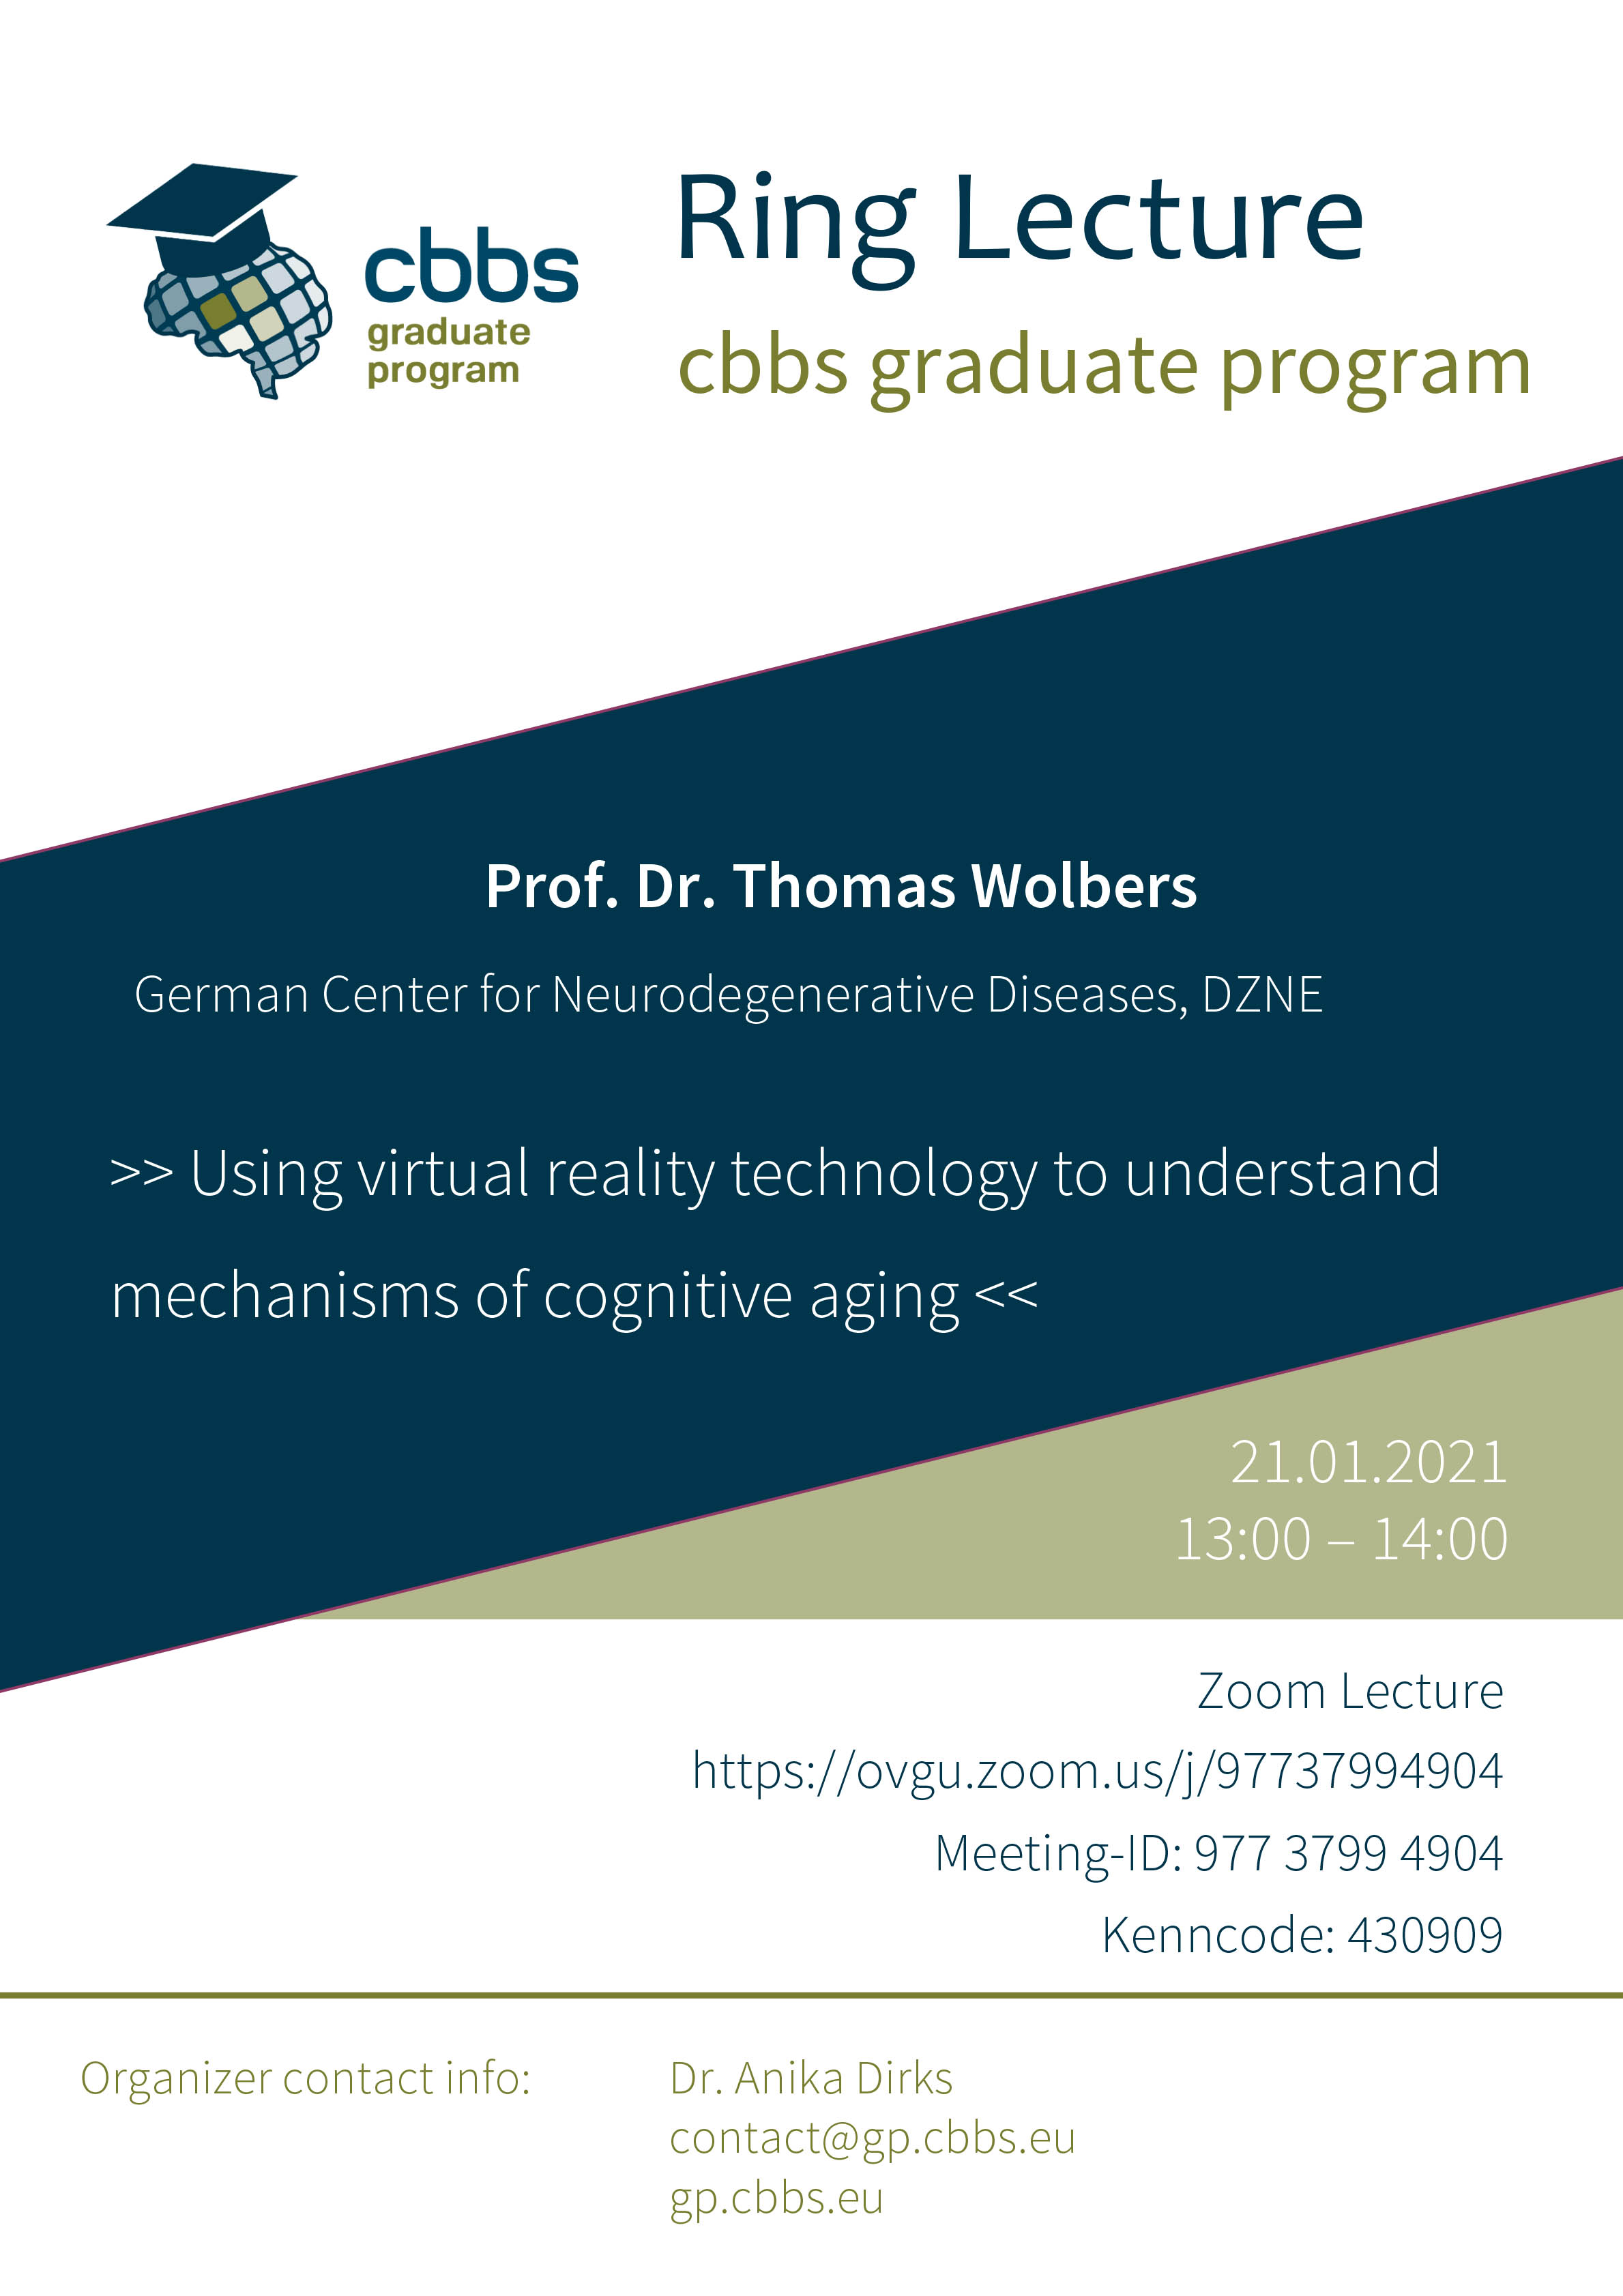 CBBS GP Ringlecture: Using virtual reality technology to understand mechanisms of cognitive aging @ Zoom